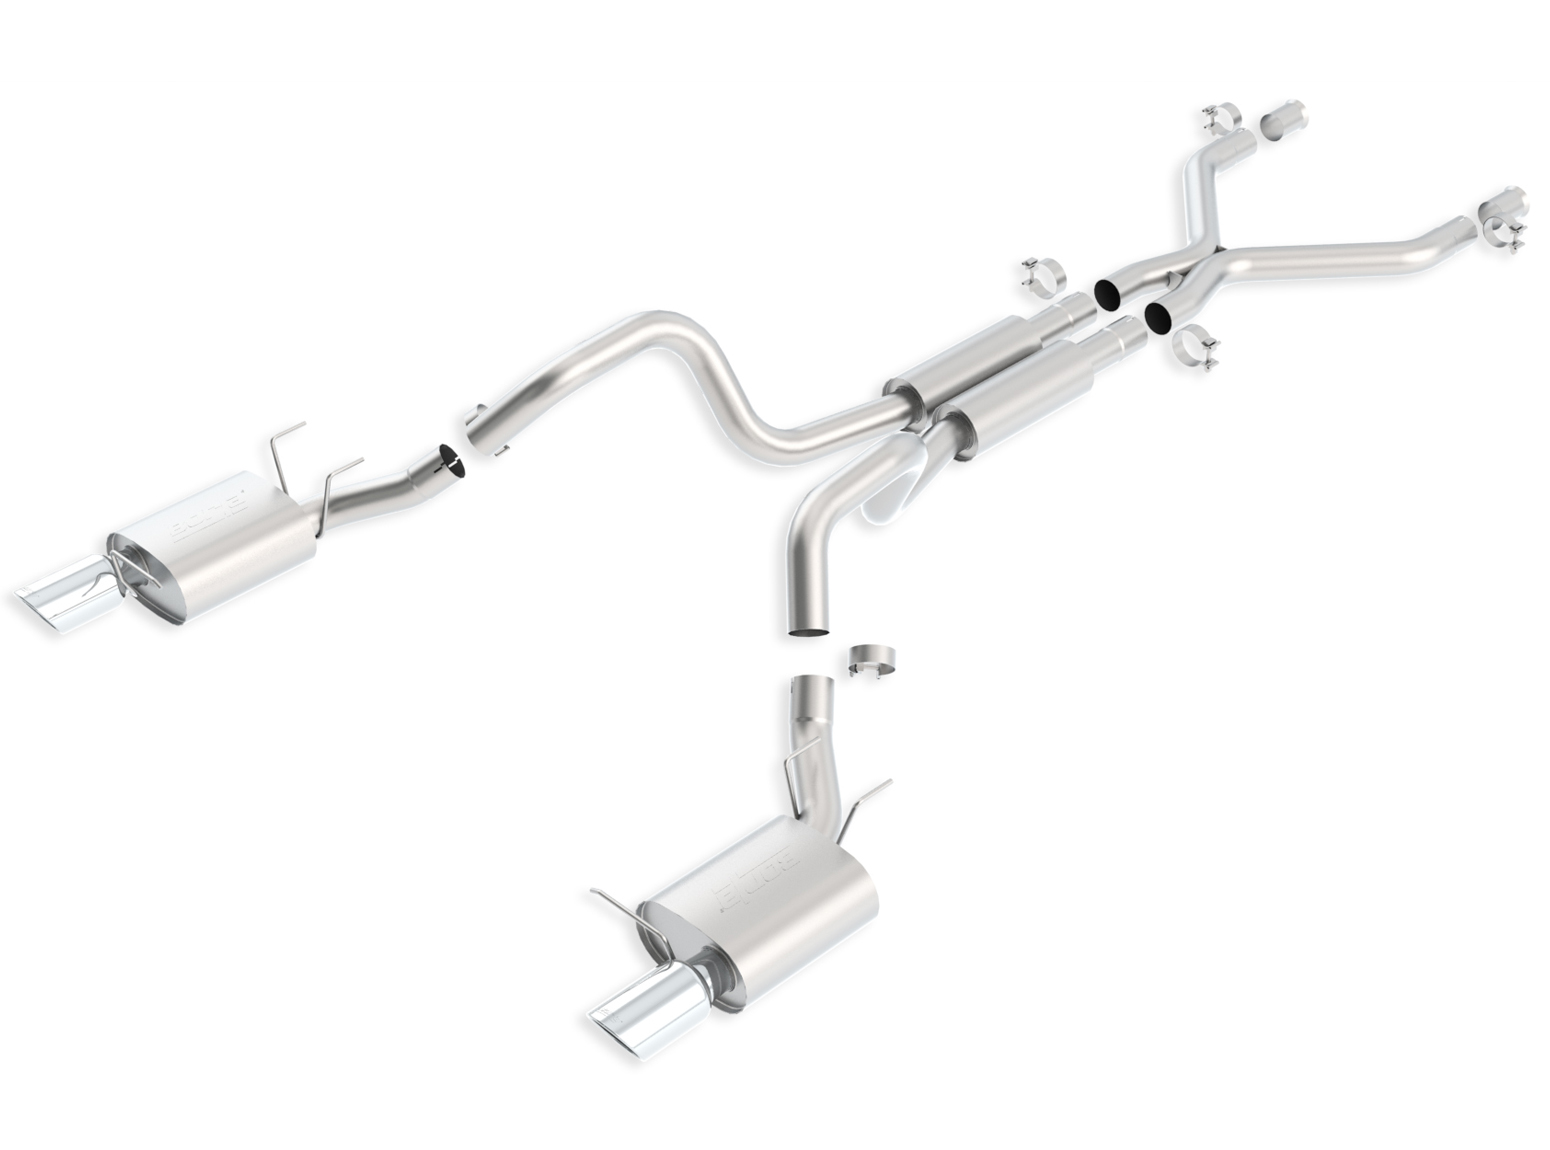 "Ford Mustang Gt 2011-2012 Borla 3"" Cat-Back Exhaust System - Single Round Rolled Angle-Cut  Long X Single Round Rolled Angle-Cut Intercooled"" Dia"